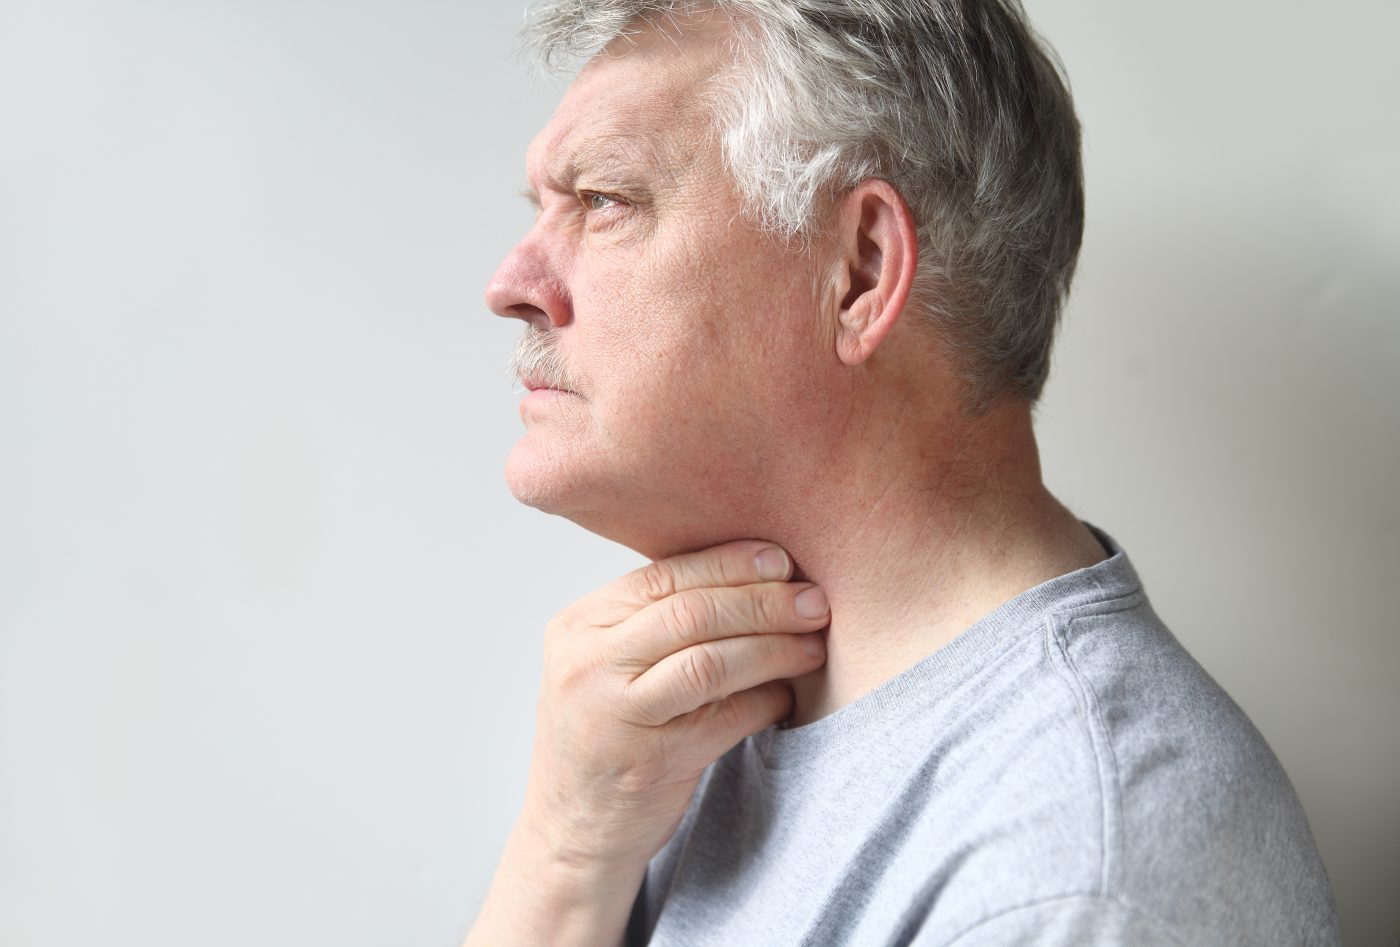 Signs Of Esophageal Cancer - healtinews